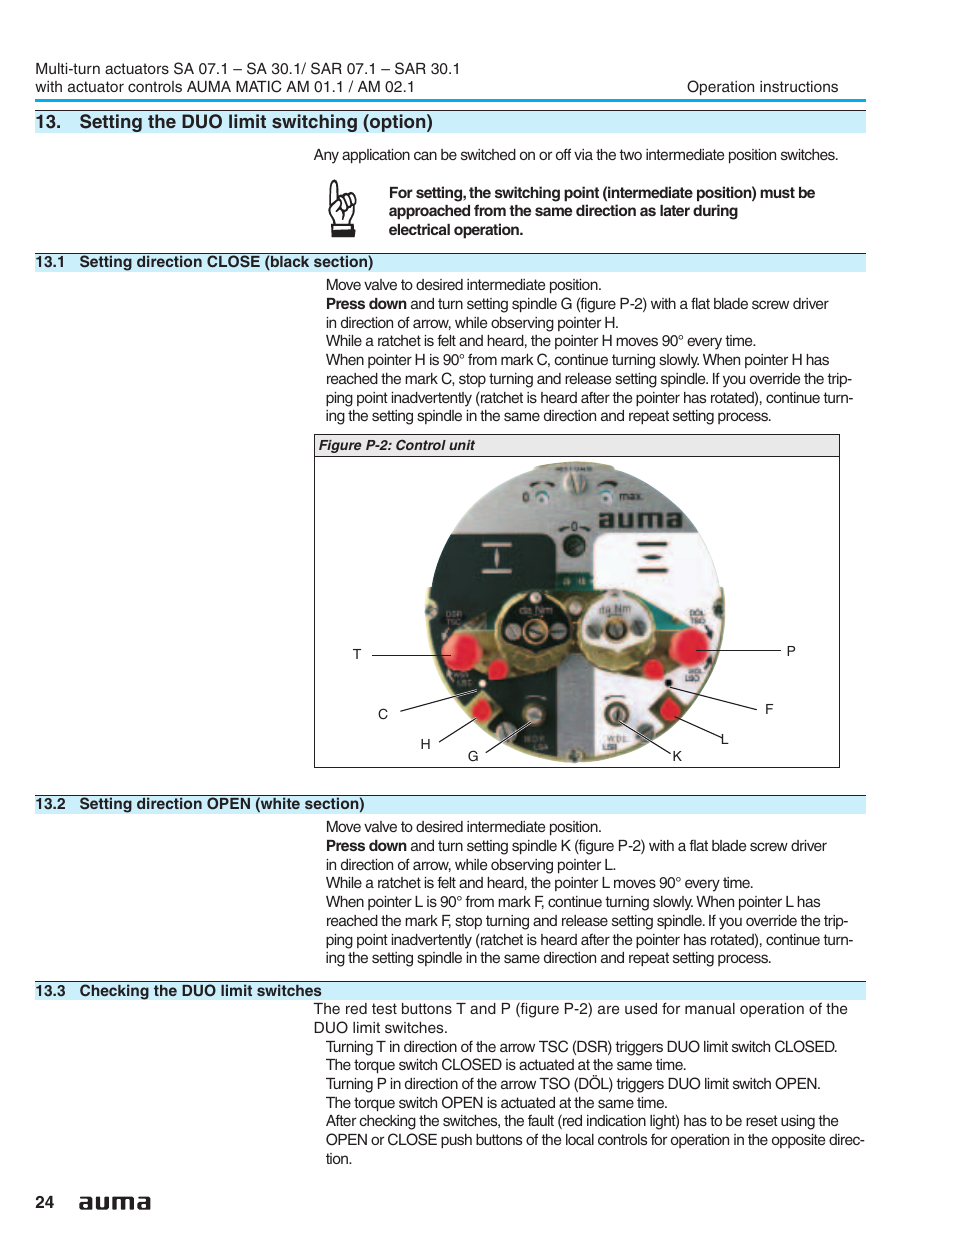 Barber Coleman Actuator Wiring Diagram Trusted Motor Operated Valve Auma Am011 Automotive U2022 Of Butterfly